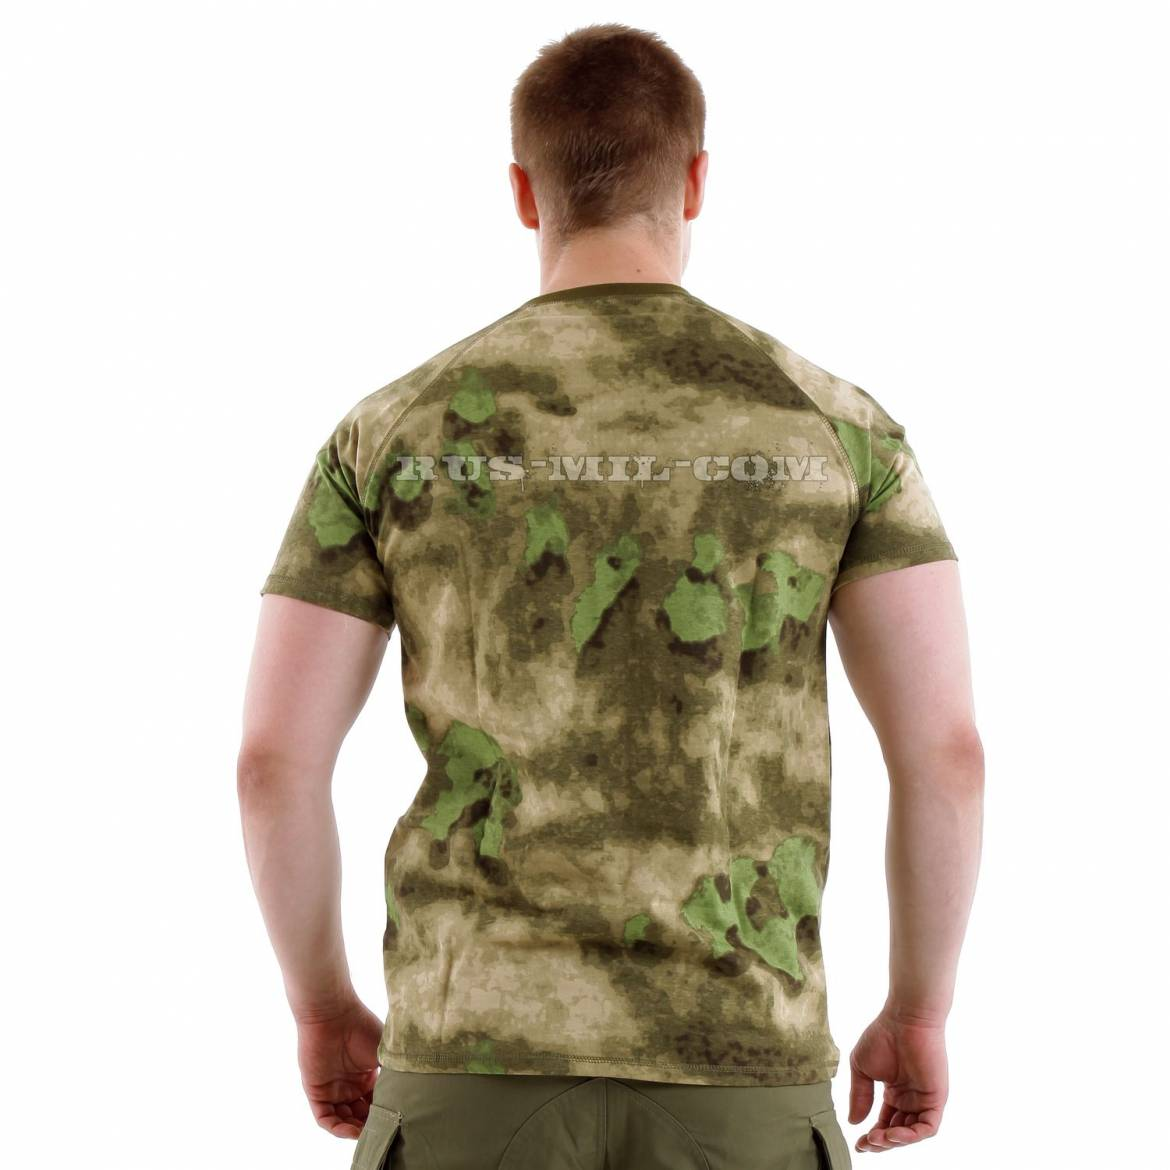 Russian-Cotton-T-Shirt-in-moss-for-sale.jpg